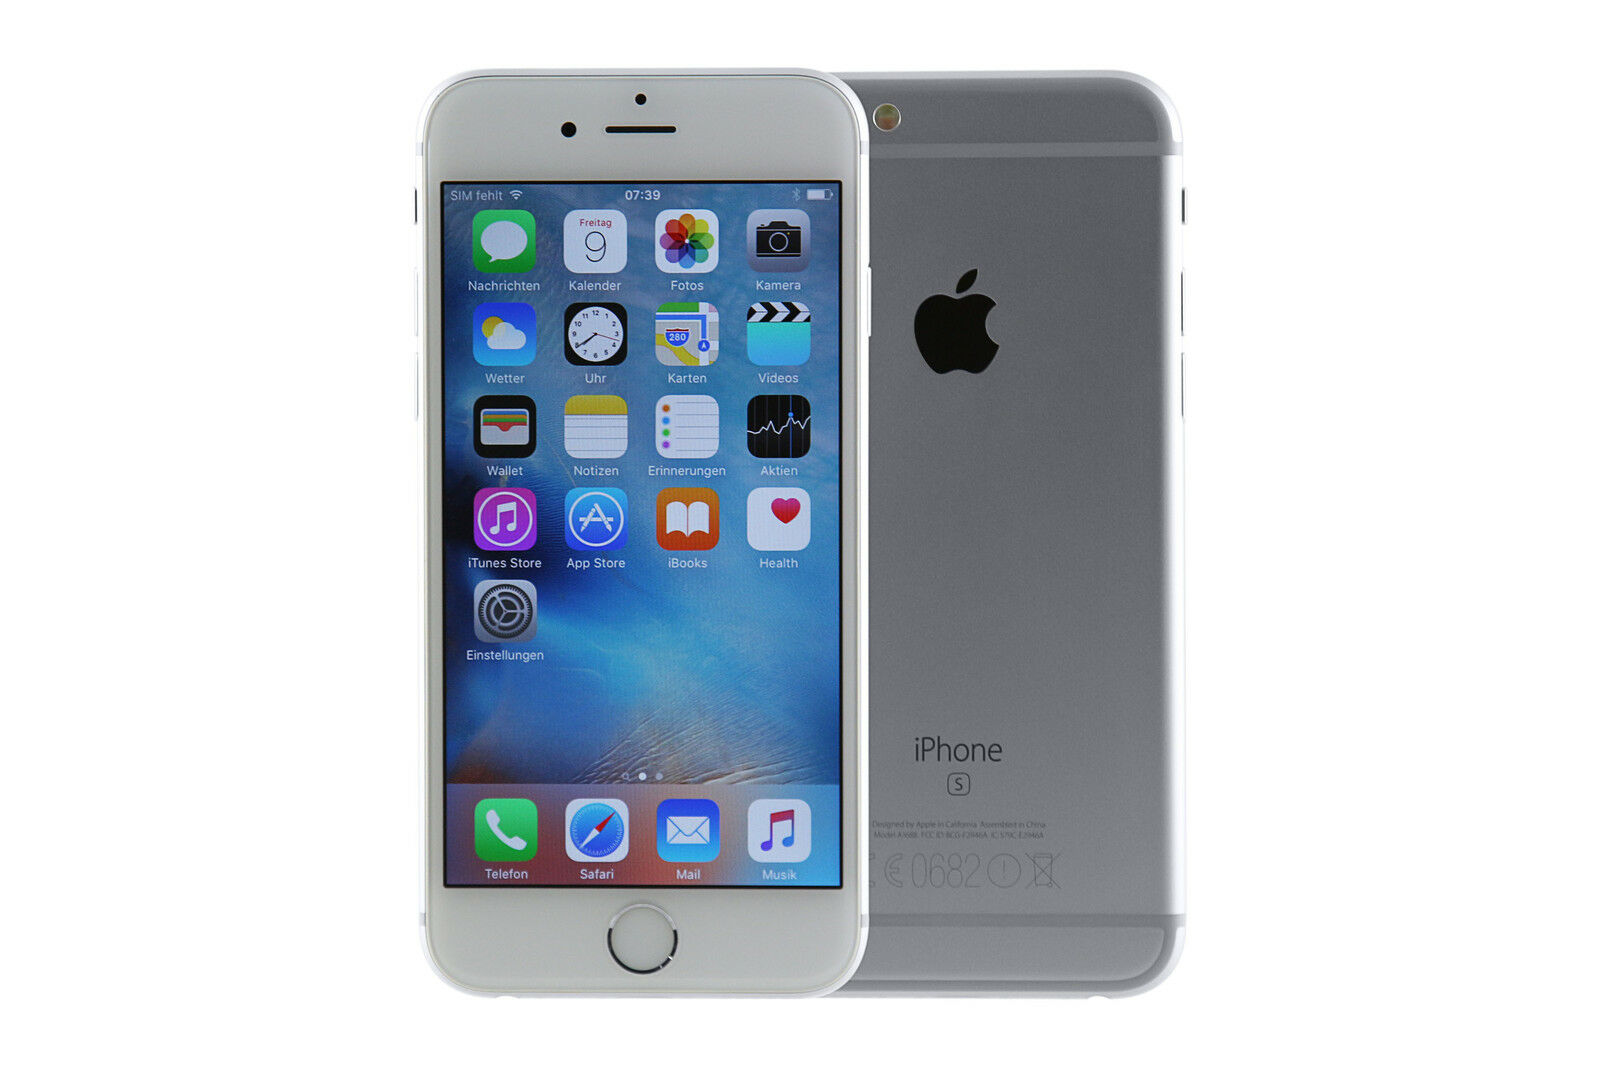 apple iphone 6s plus silber 64 gb ohne simlock guter zustand aktion eur 489 99 picclick be. Black Bedroom Furniture Sets. Home Design Ideas